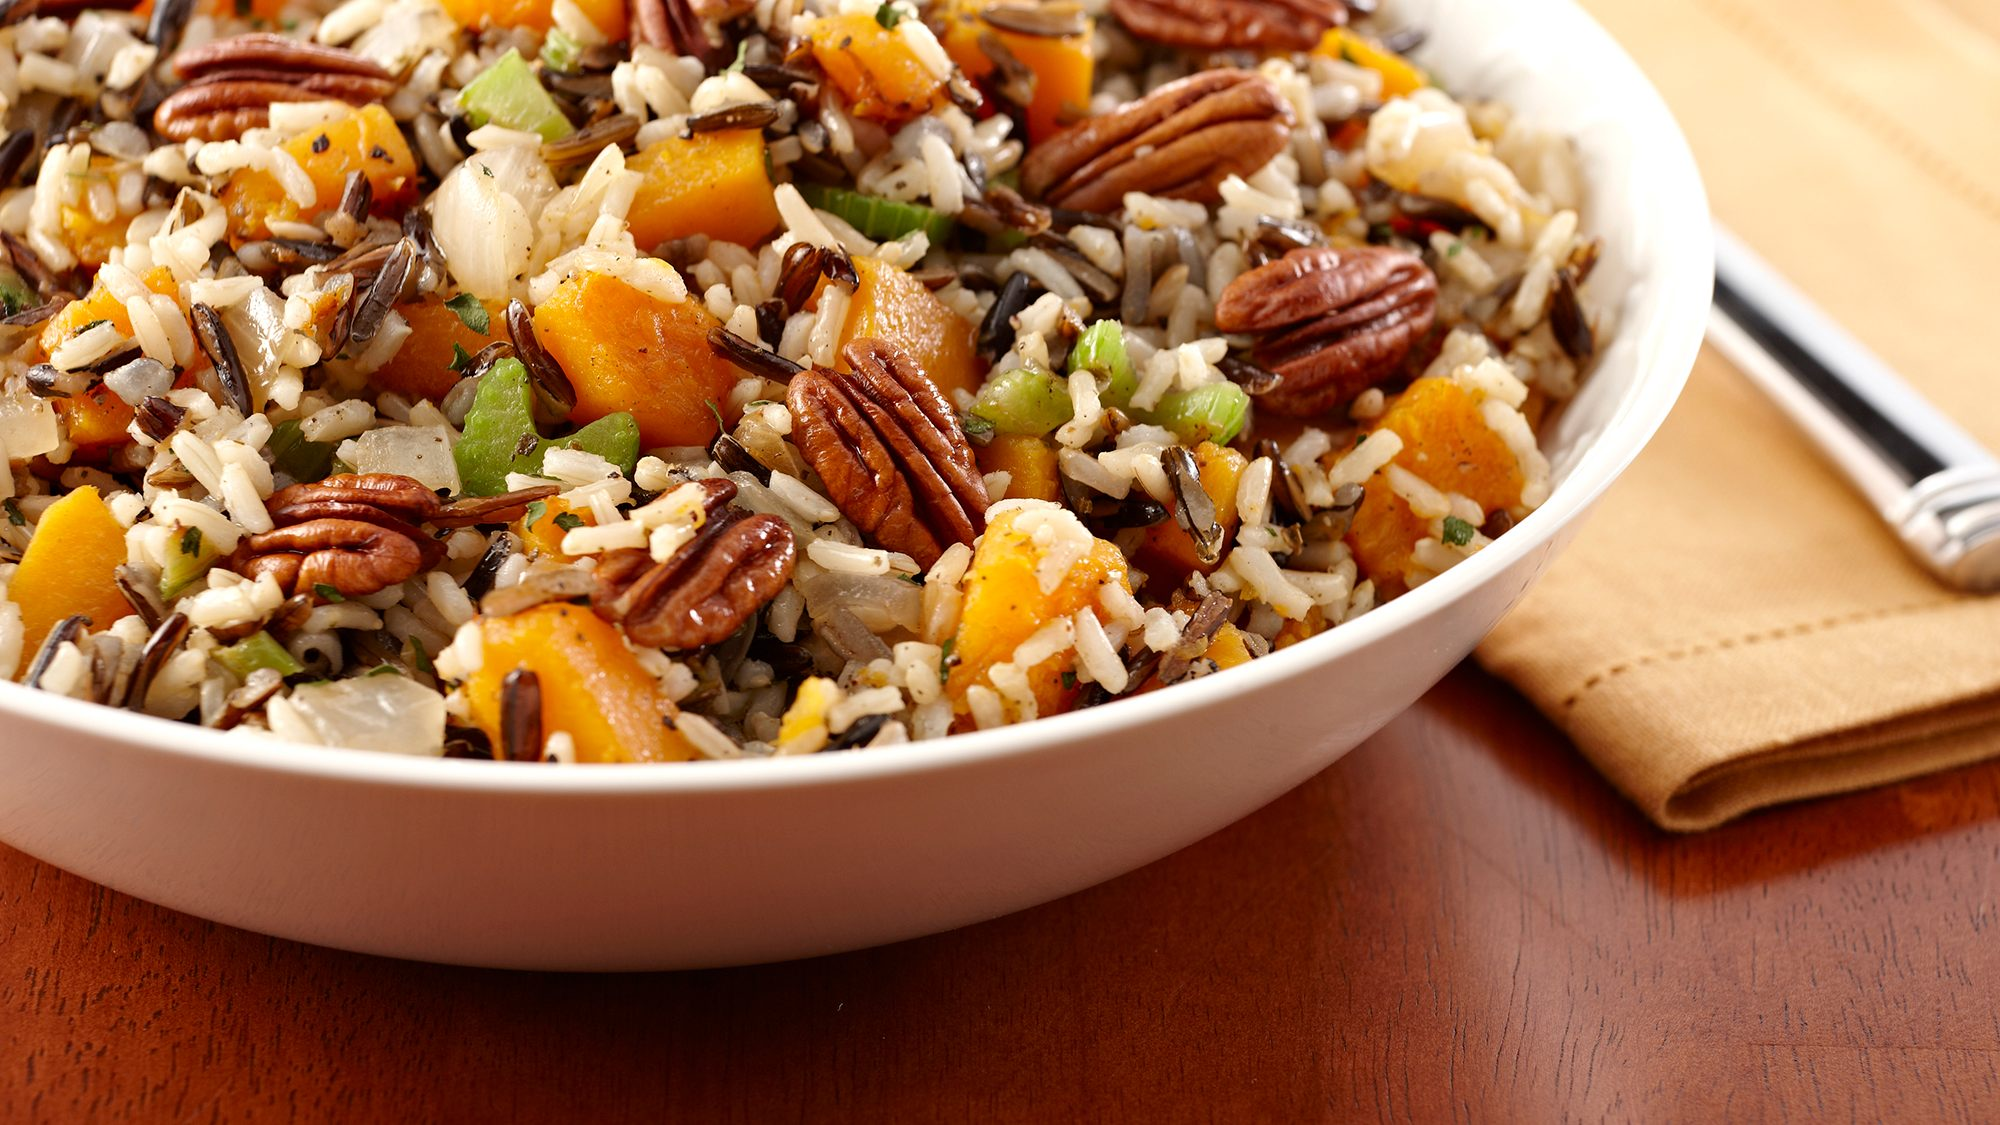 McCormick Herbed Wild Rice and Butternut Squash Stuffing